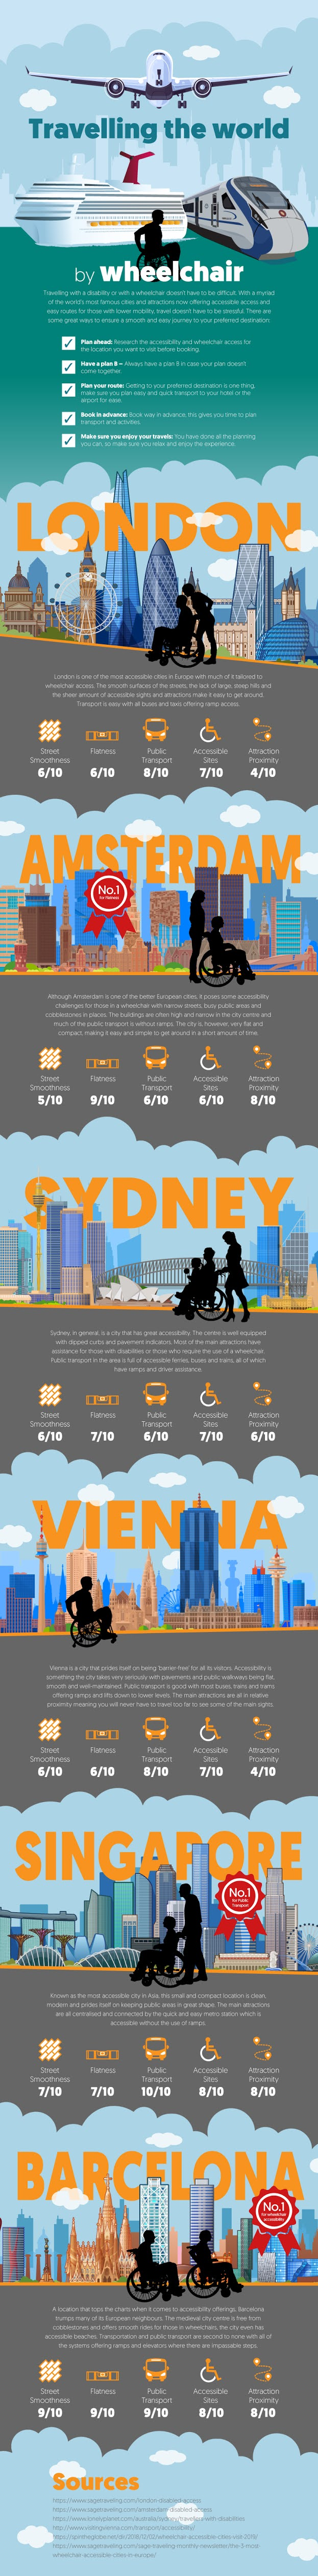 Travelling the world by wheelchair #Infographic